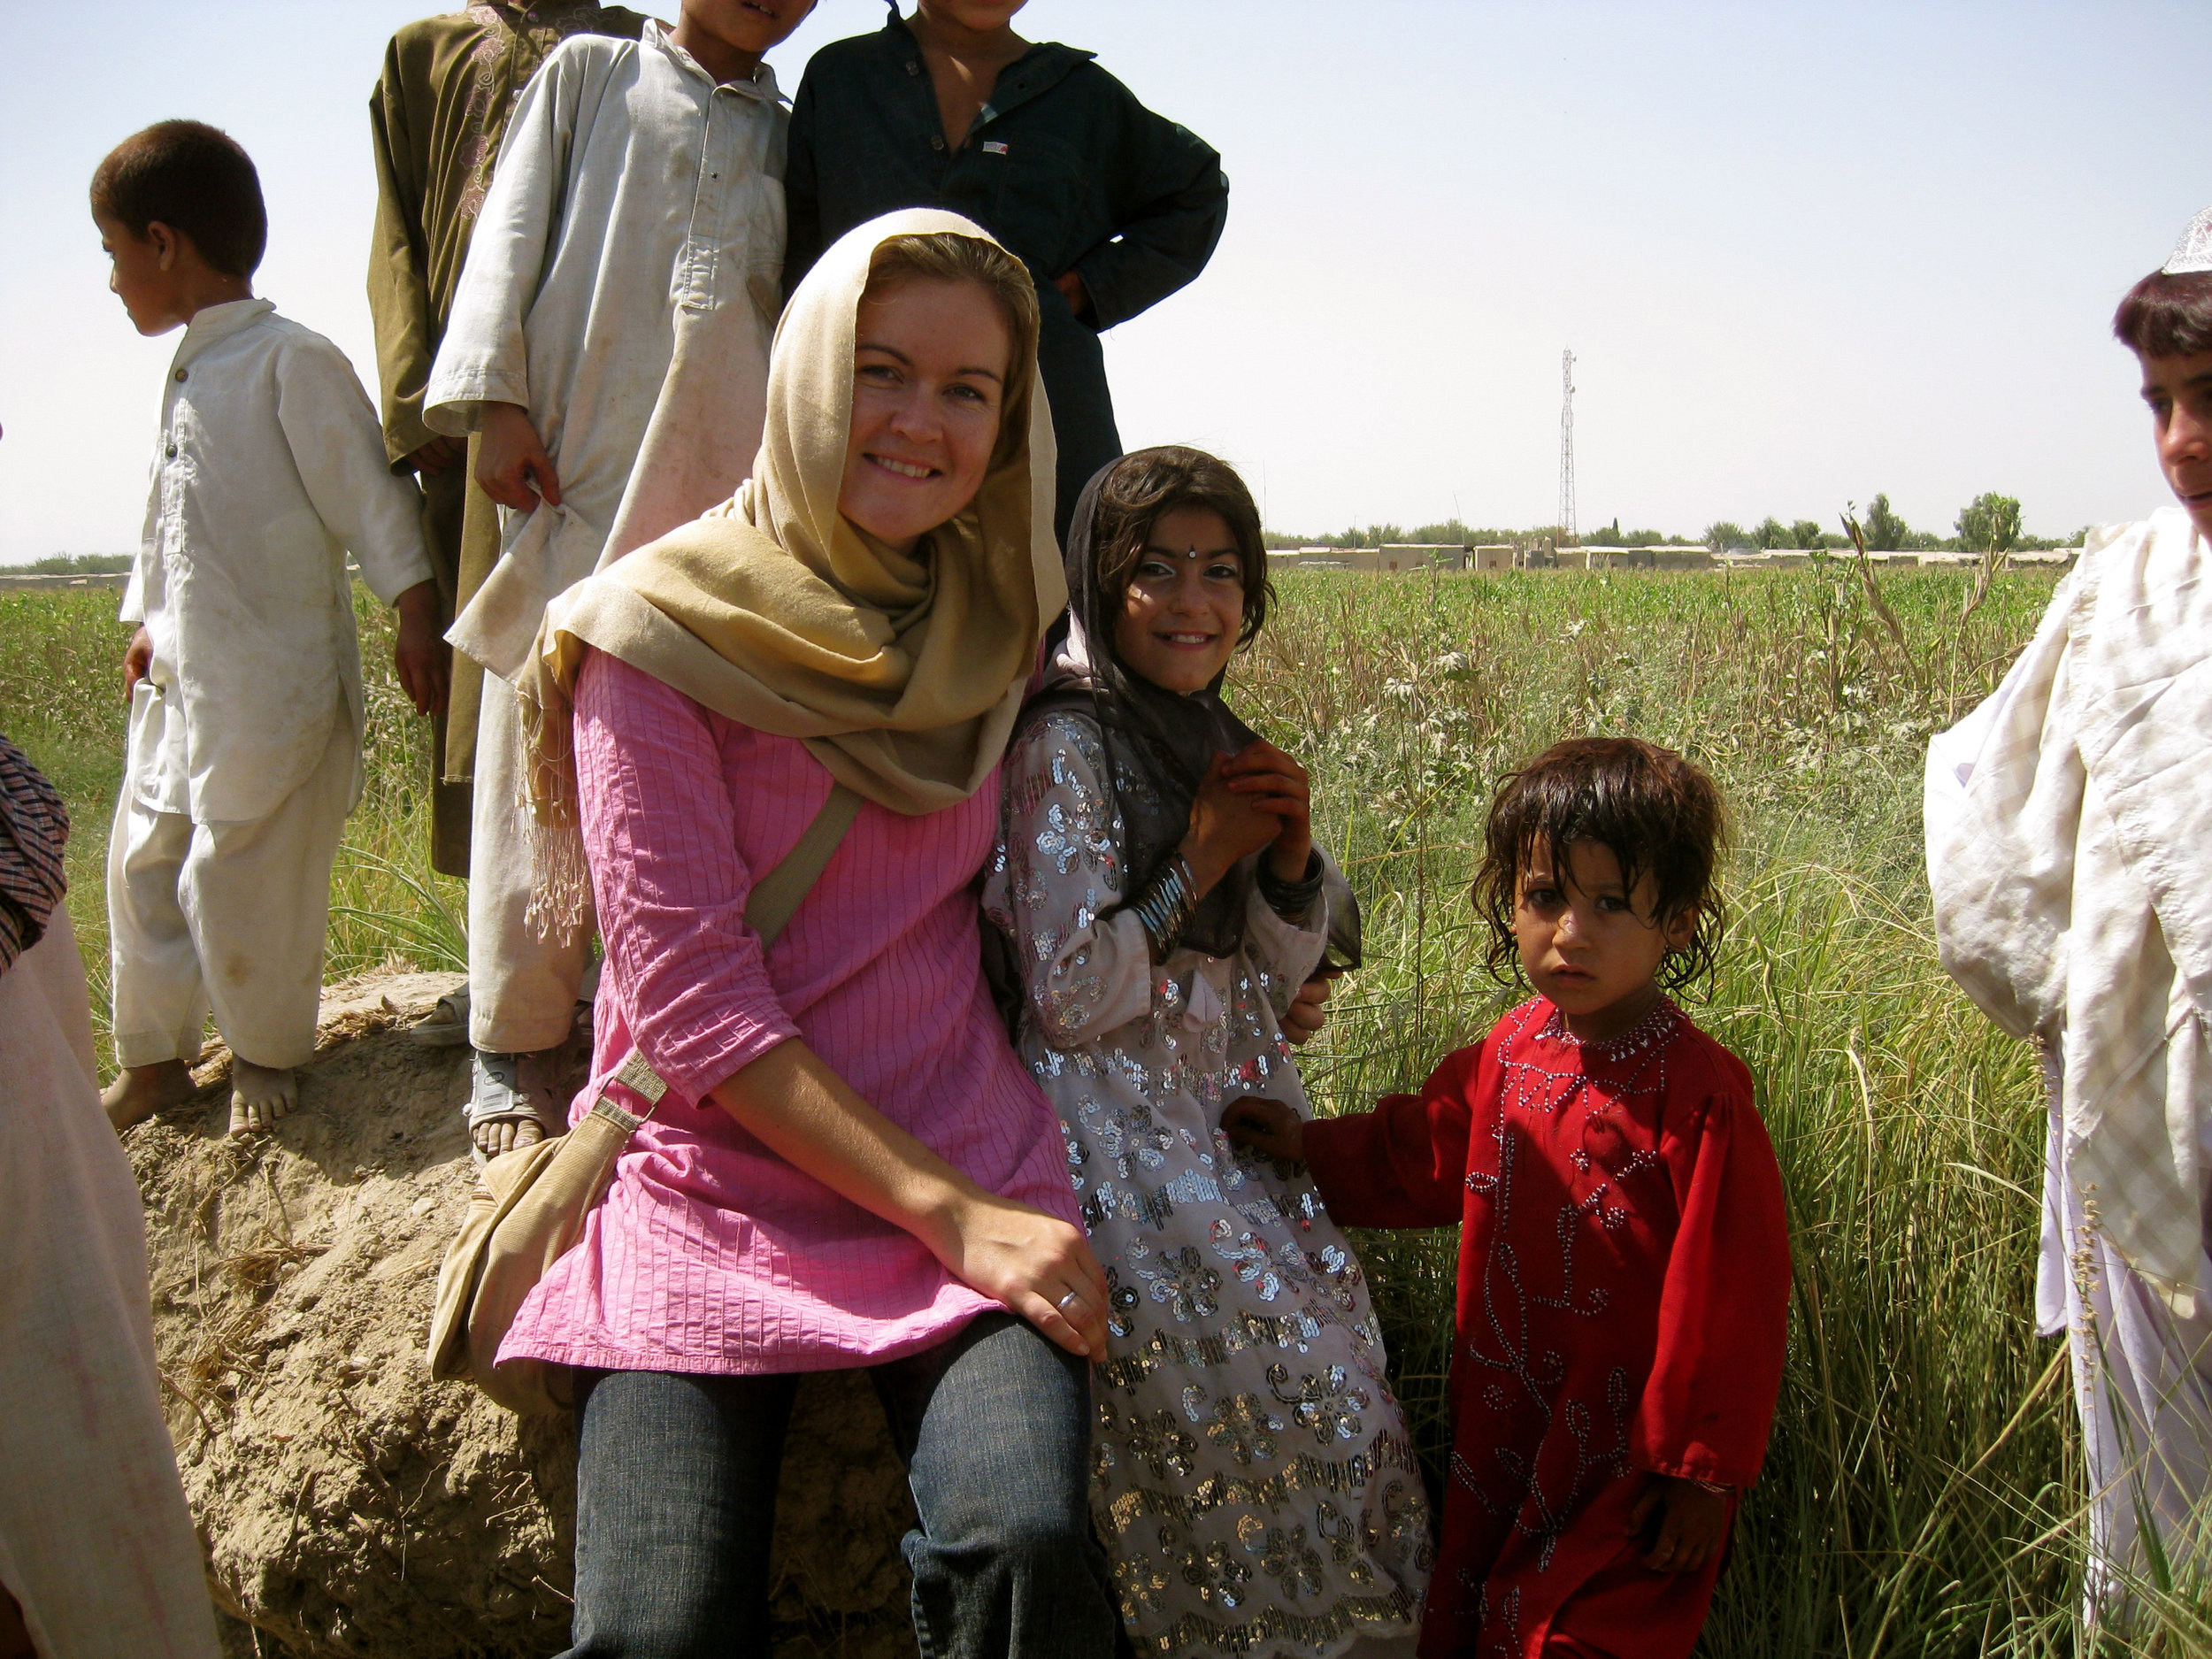 Caroline Hurndall MBE, Head of Iran-Iraq Dept.Foreign and Commonwealth Office